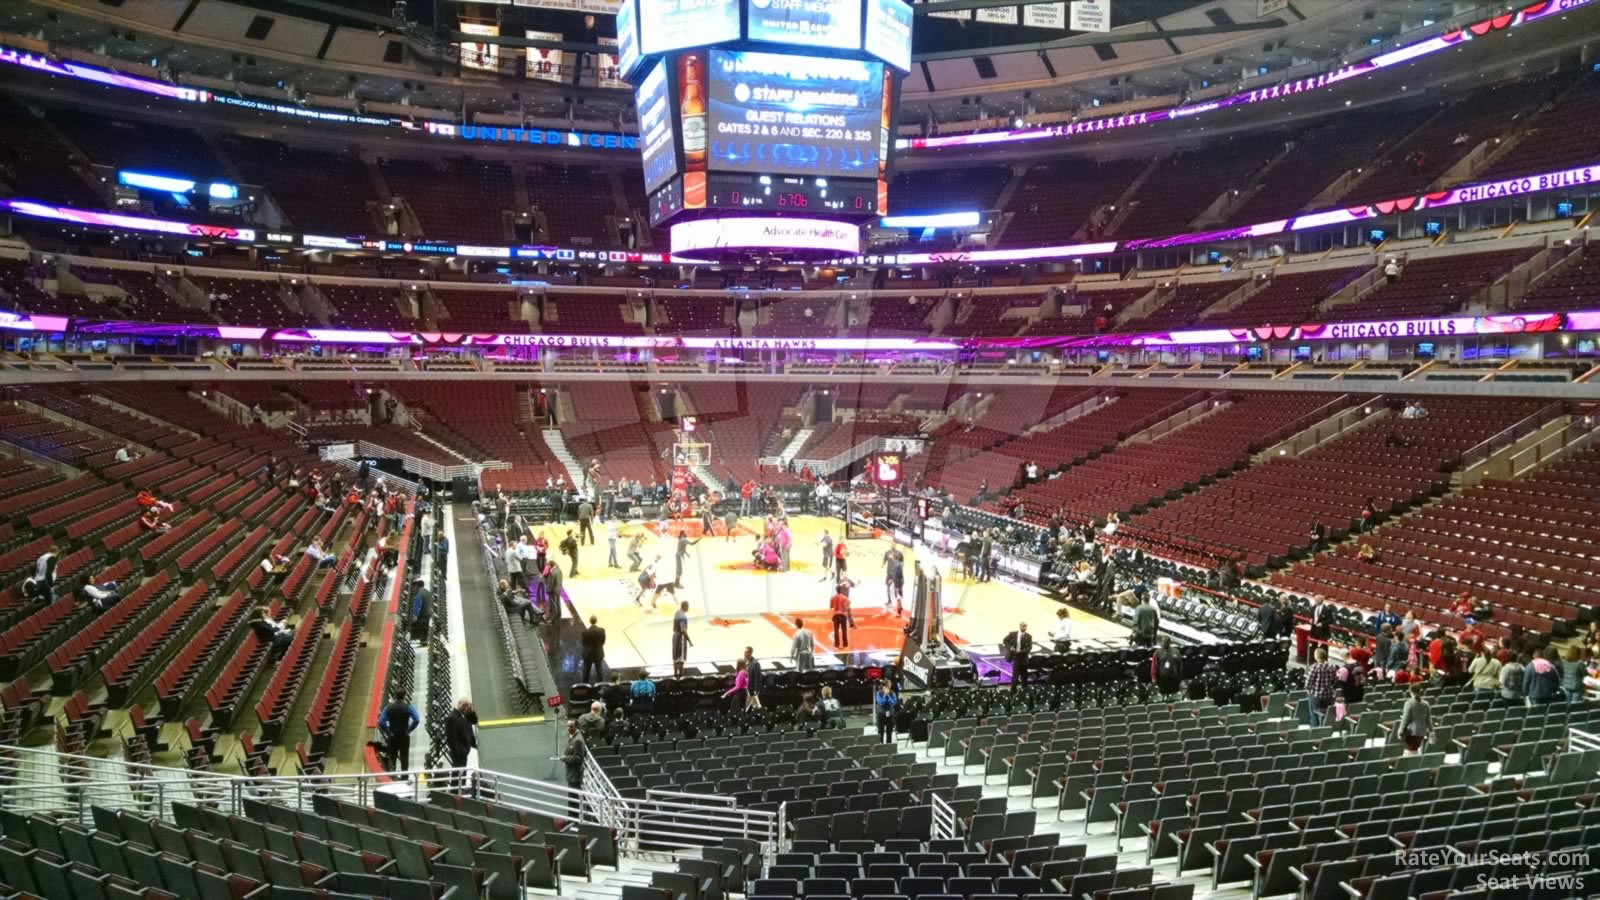 United Center Section 107 - Chicago Bulls - RateYourSeats.com